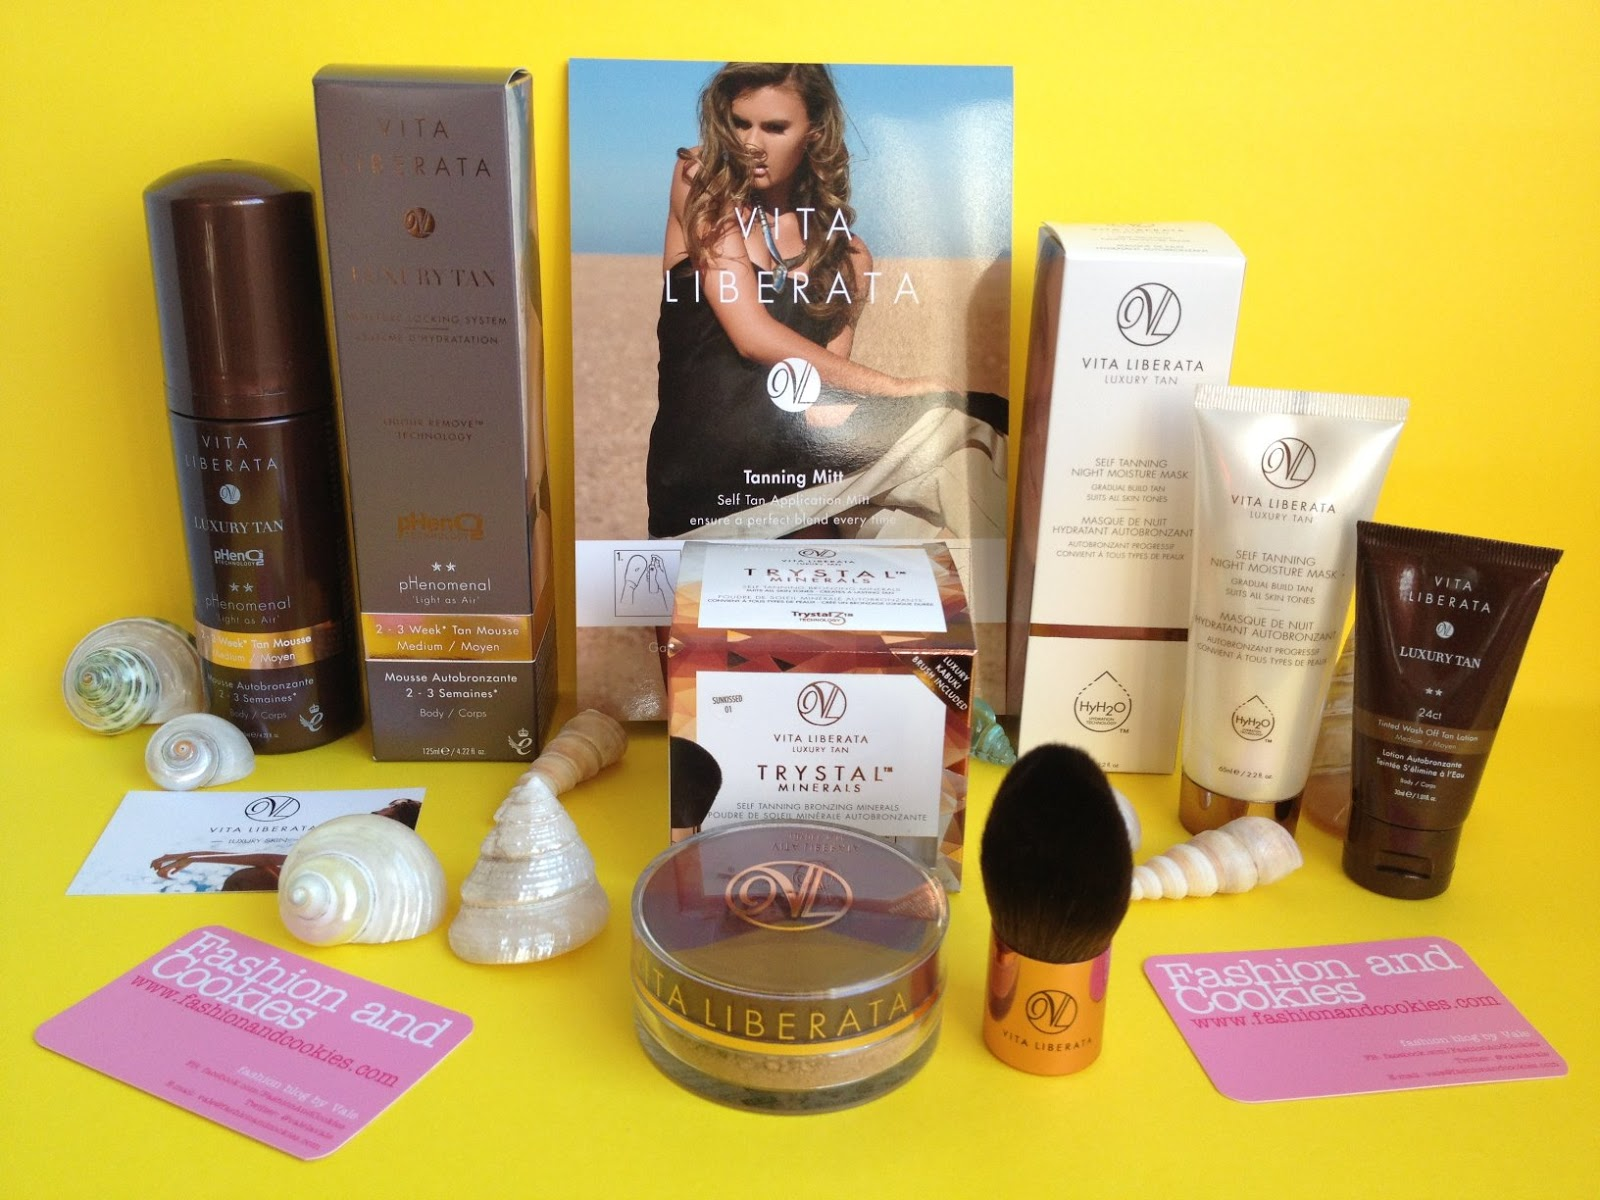 How to get a tan quickly and safely with Vita Liberata on Fashion and Cookies fashion and Beauty blog